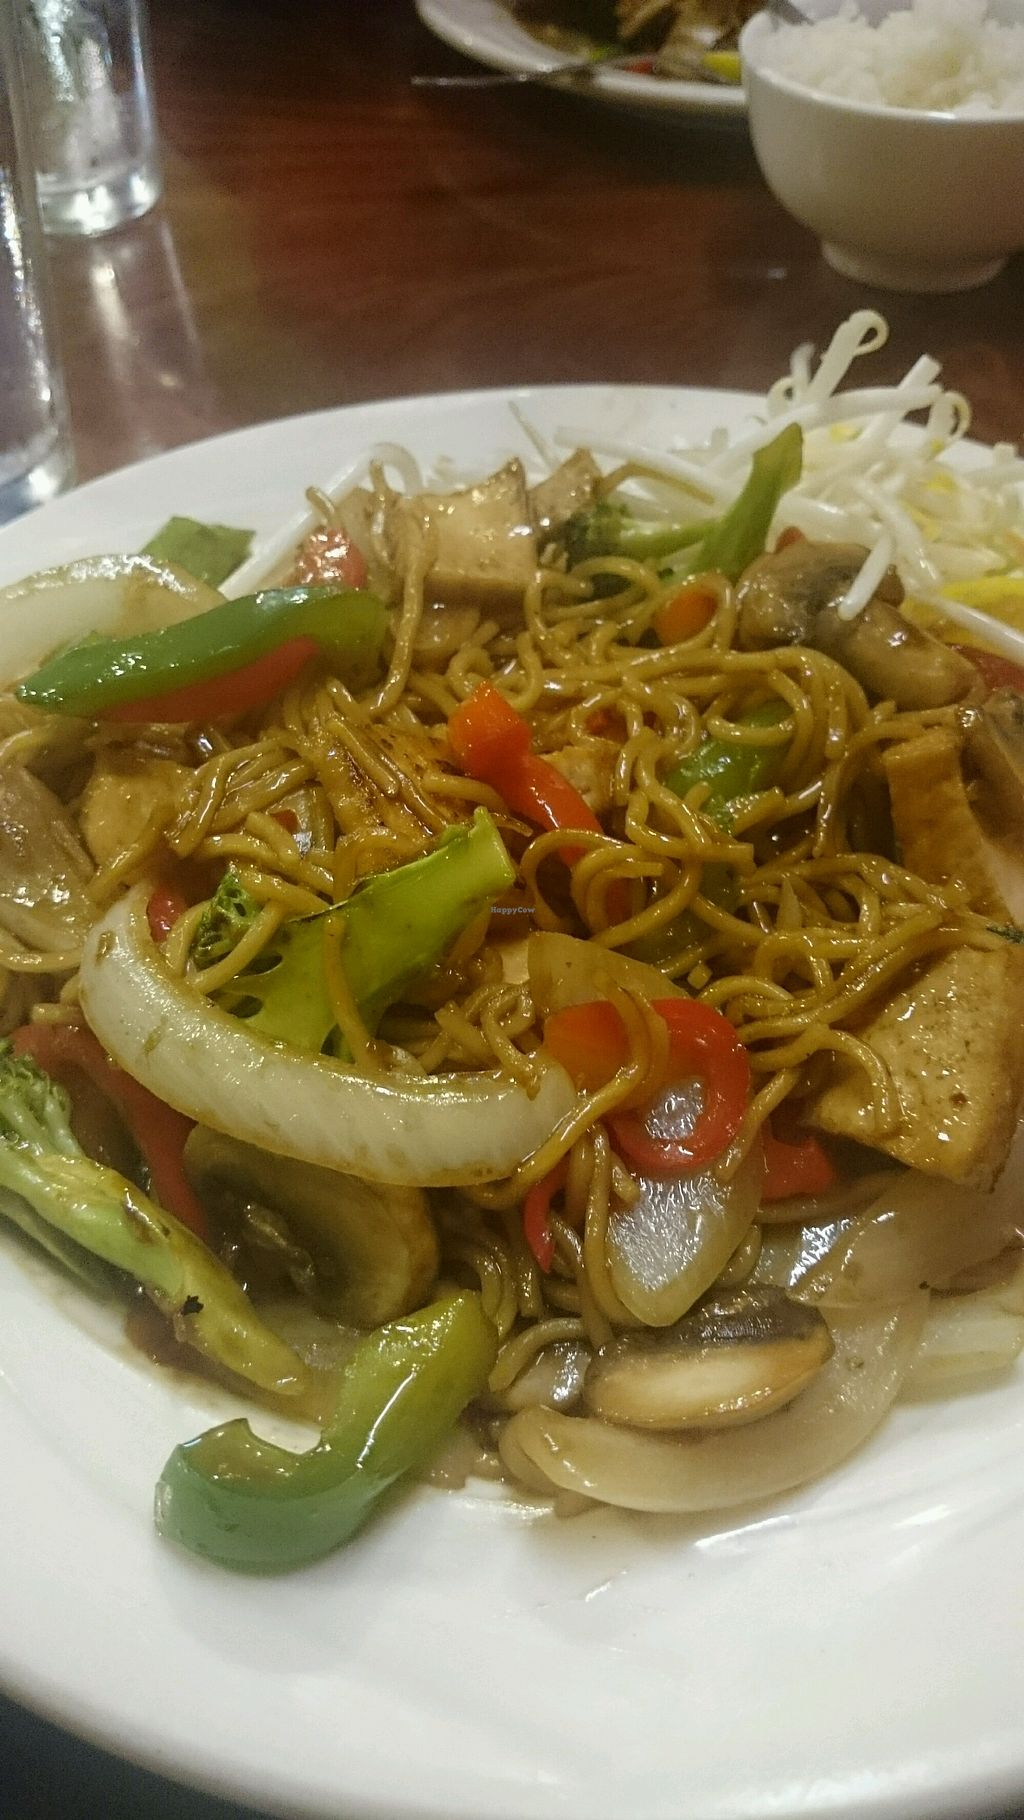 """Photo of EZ Thai Restaurant  by <a href=""""/members/profile/Hippiechick1970.lt"""">Hippiechick1970.lt</a> <br/>Yakisoba noodles- contains egg so not vegan just veg  <br/> October 1, 2017  - <a href='/contact/abuse/image/55353/310353'>Report</a>"""